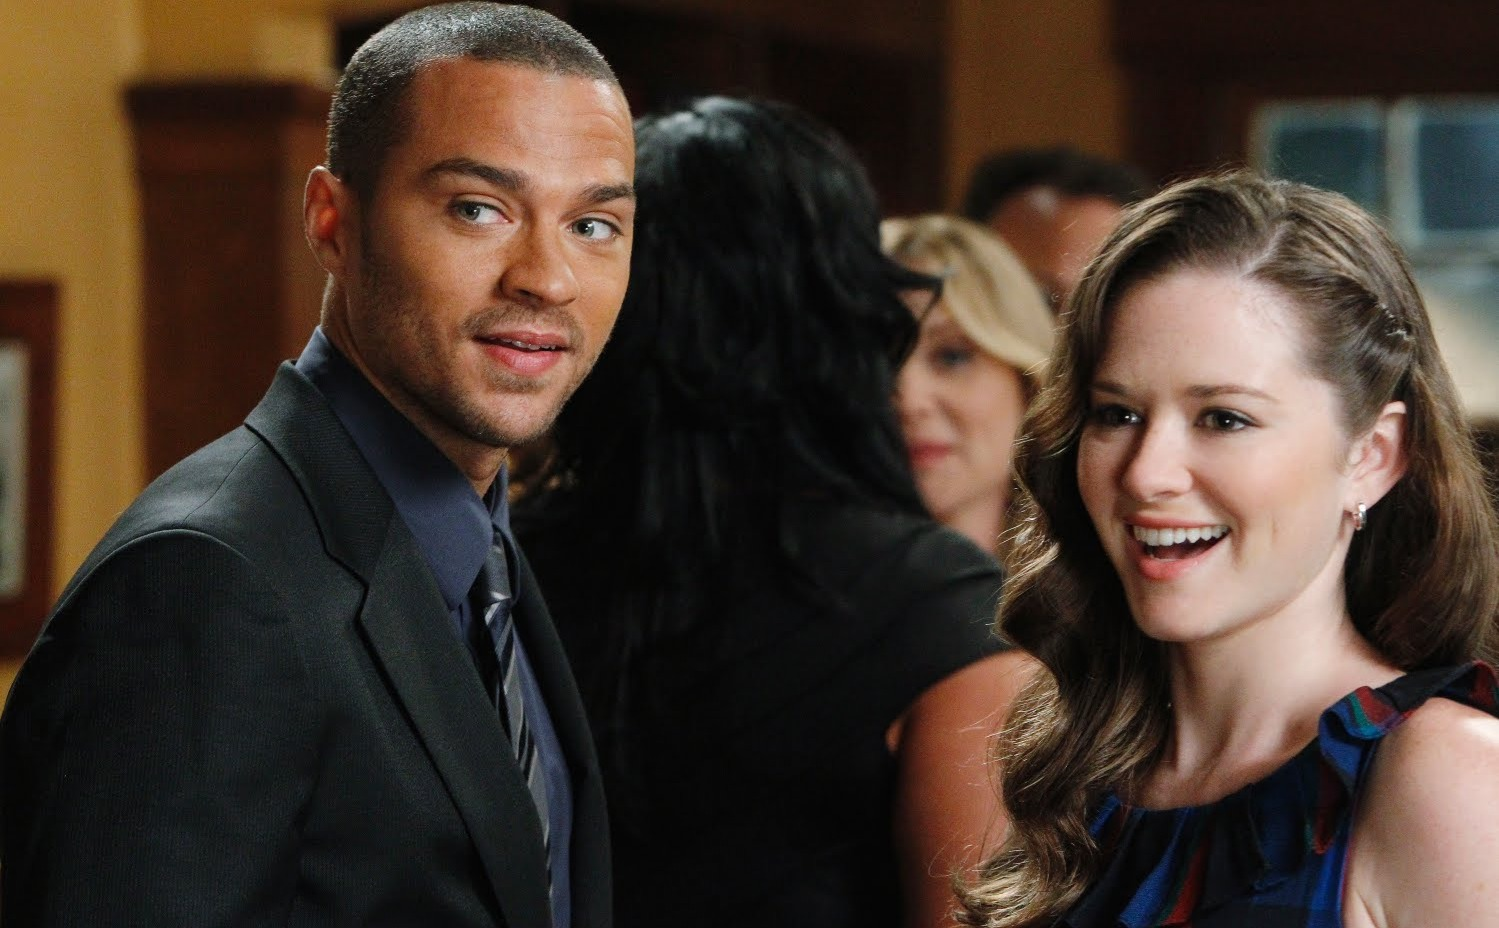 Drew and Williams as April and Jackson.